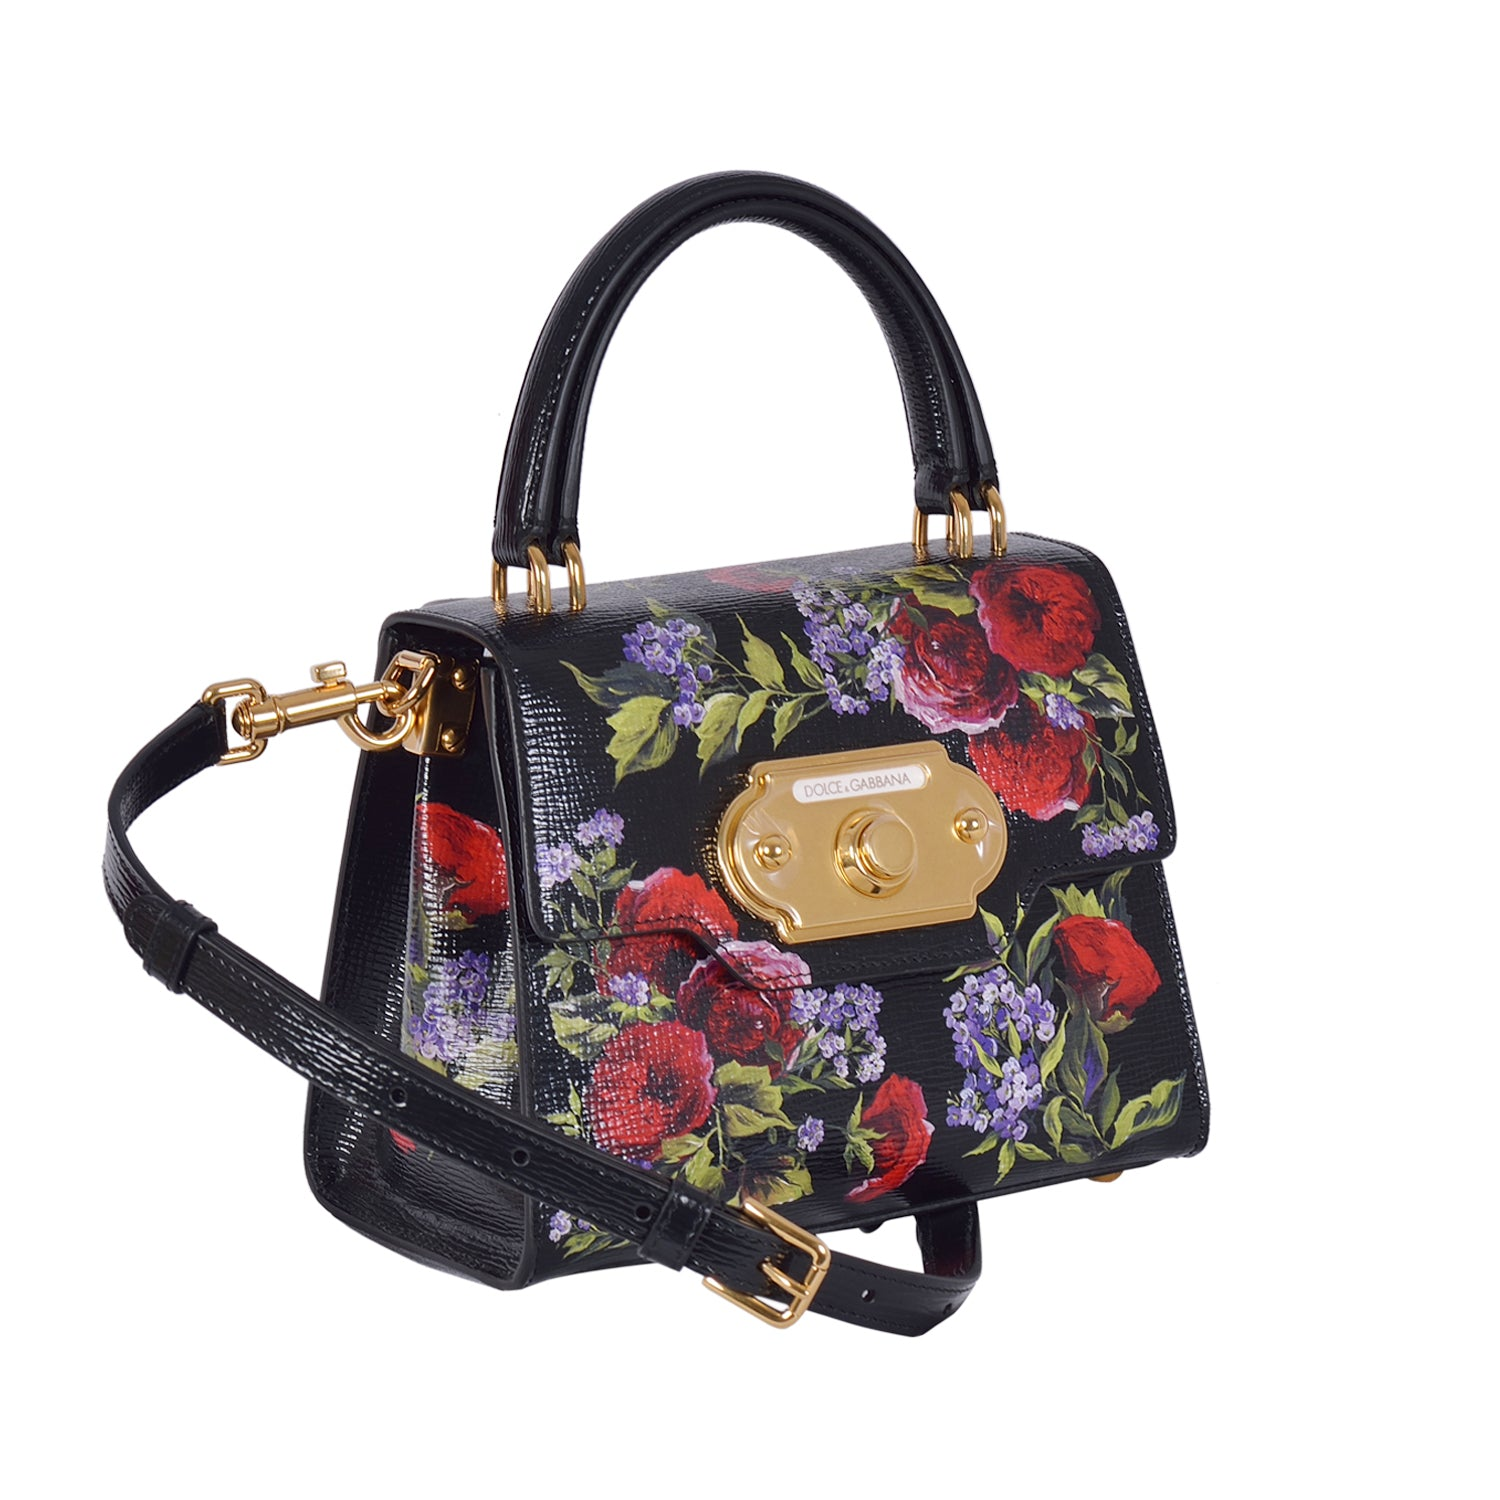 DOLCE & GABBANA Black Flower Print Mini Bag